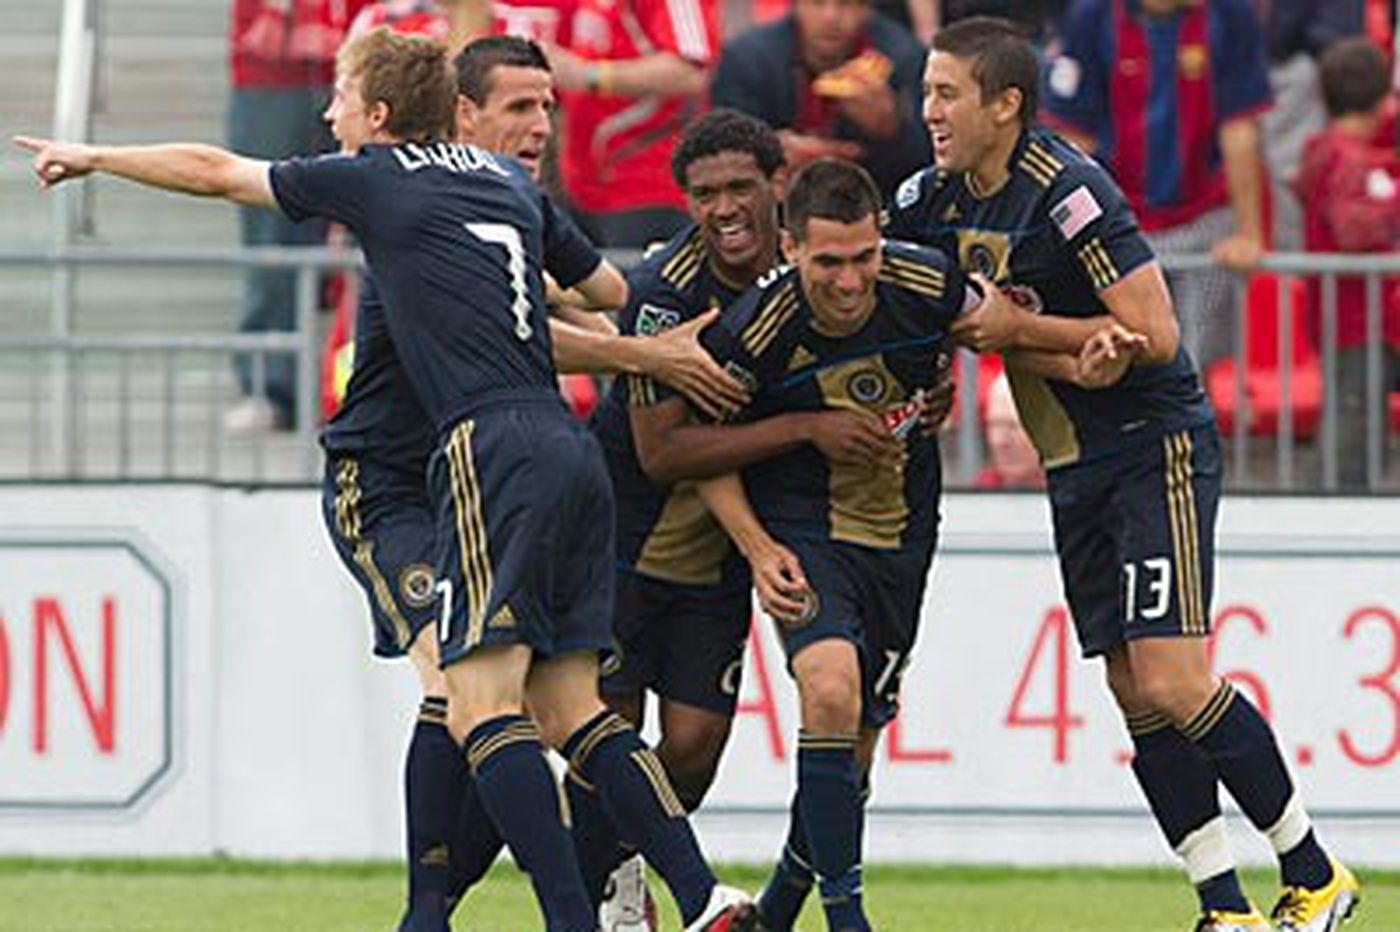 Union erupt for 6-2 victory